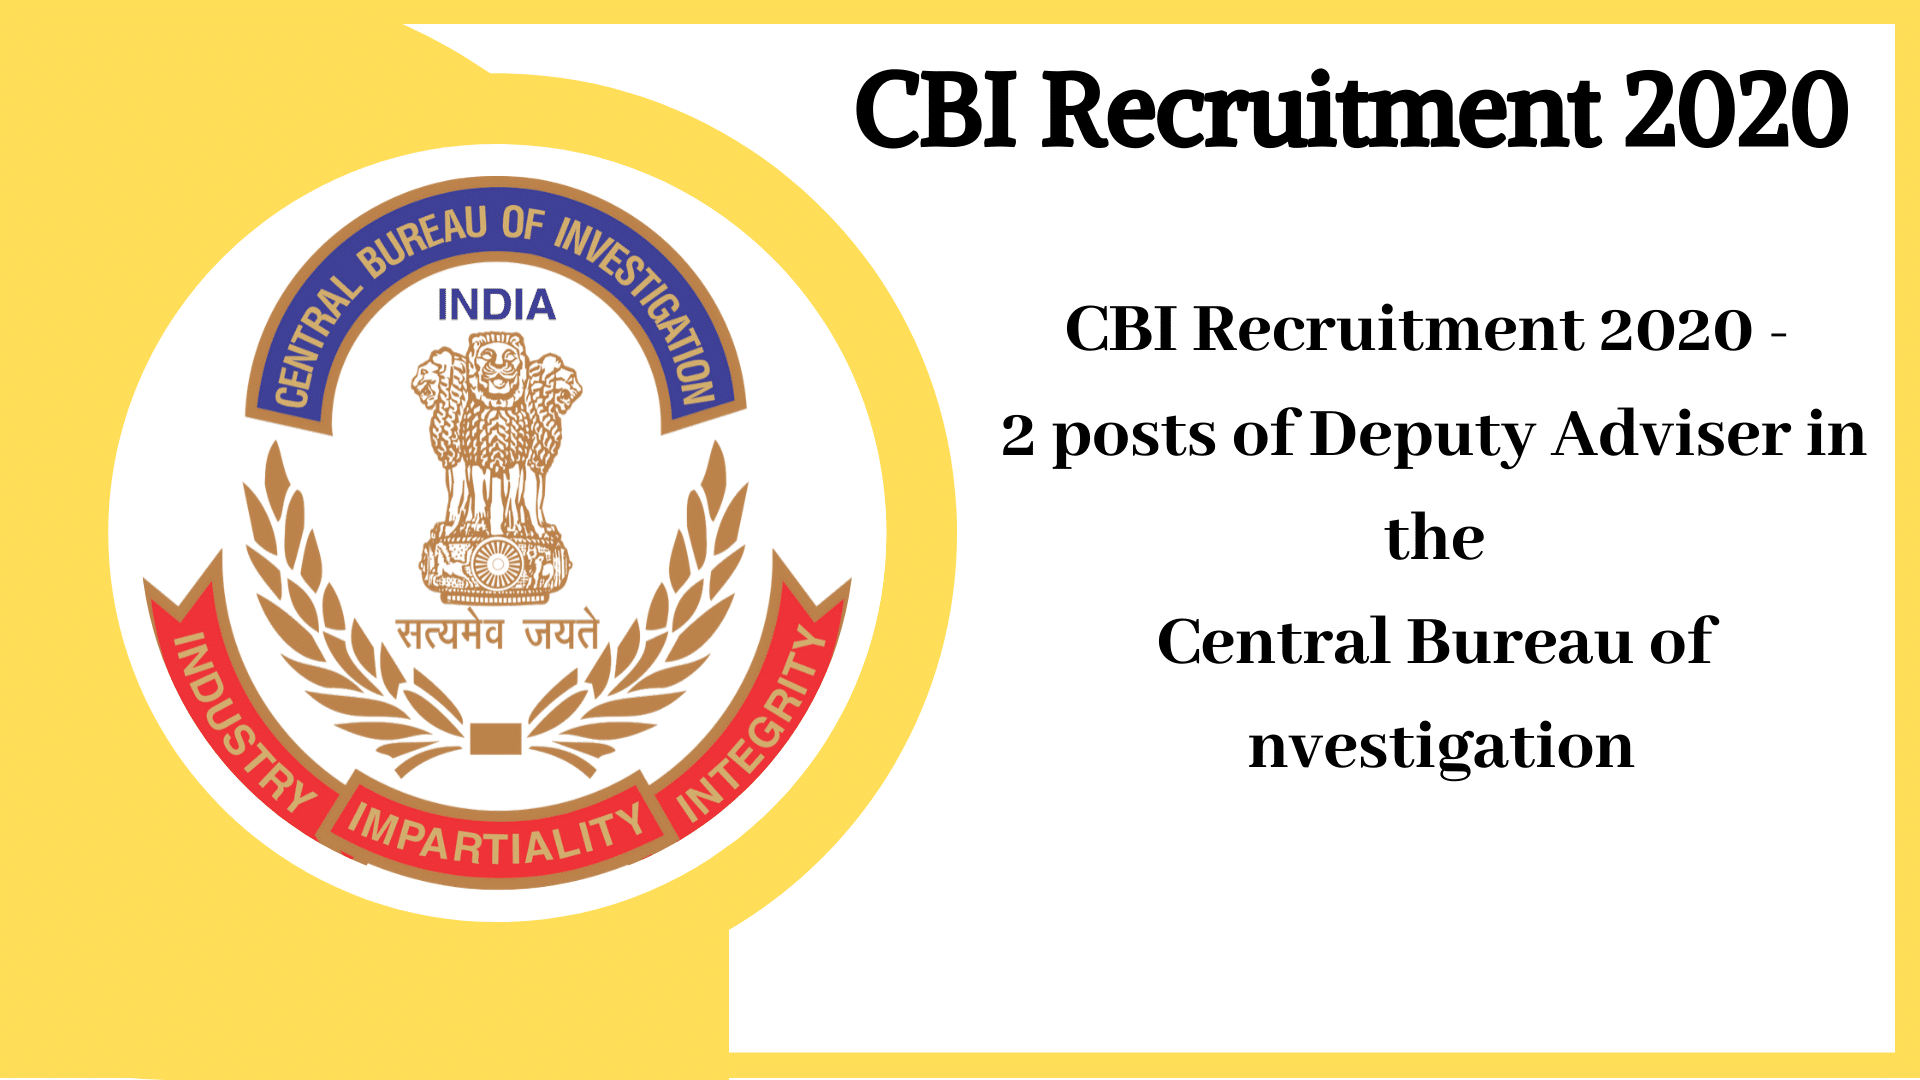 CBI Recruitment 2020